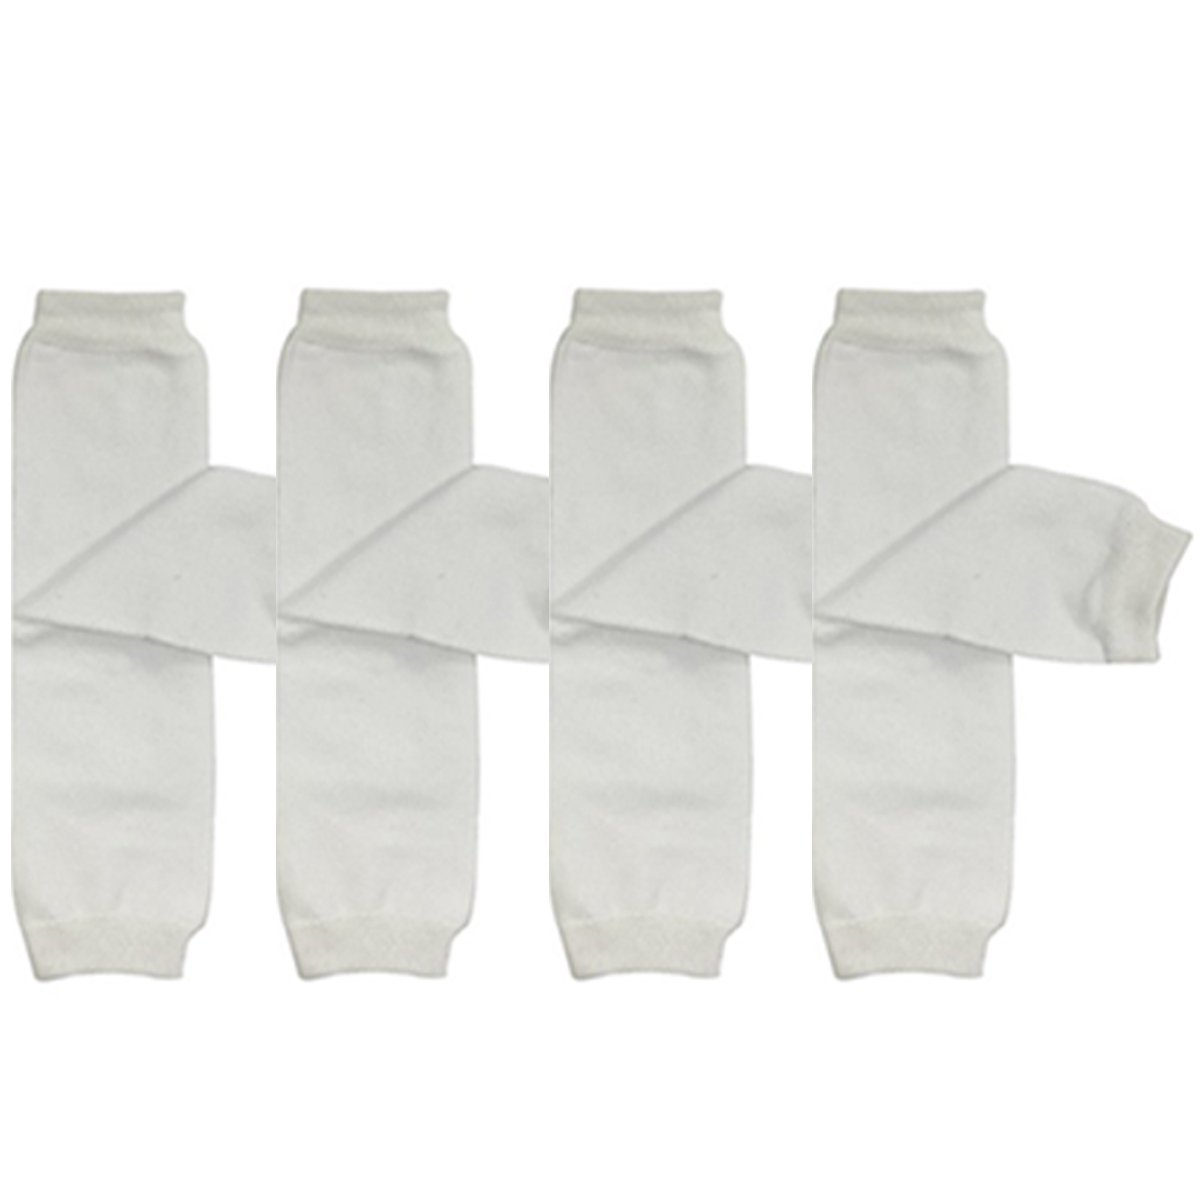 ALLYDREW 4 Pack Solid Baby Leg Warmer Set & Toddler Solid Leg Warmer Set for Boys & Girls, White